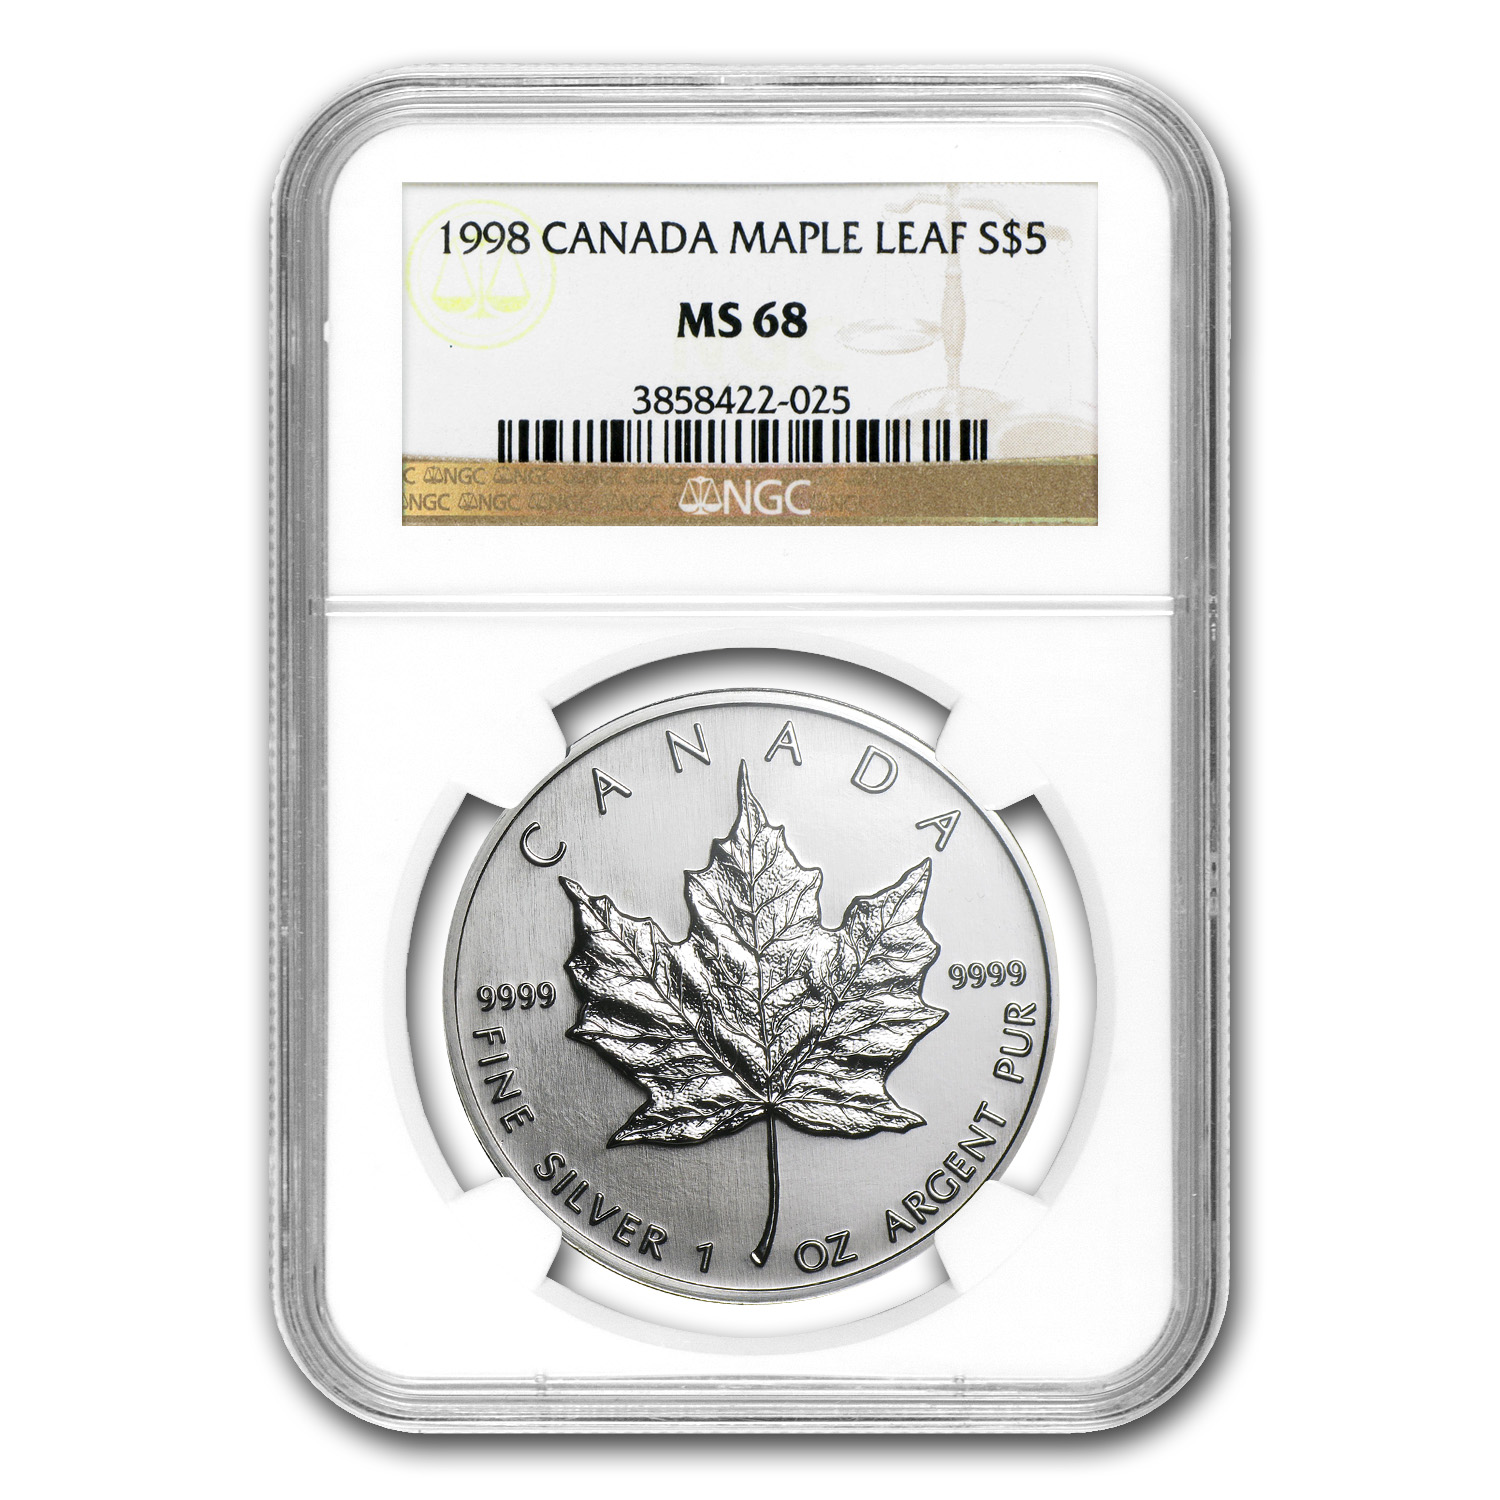 1998 1 oz Silver Canadian Maple Leaf MS-68 NGC